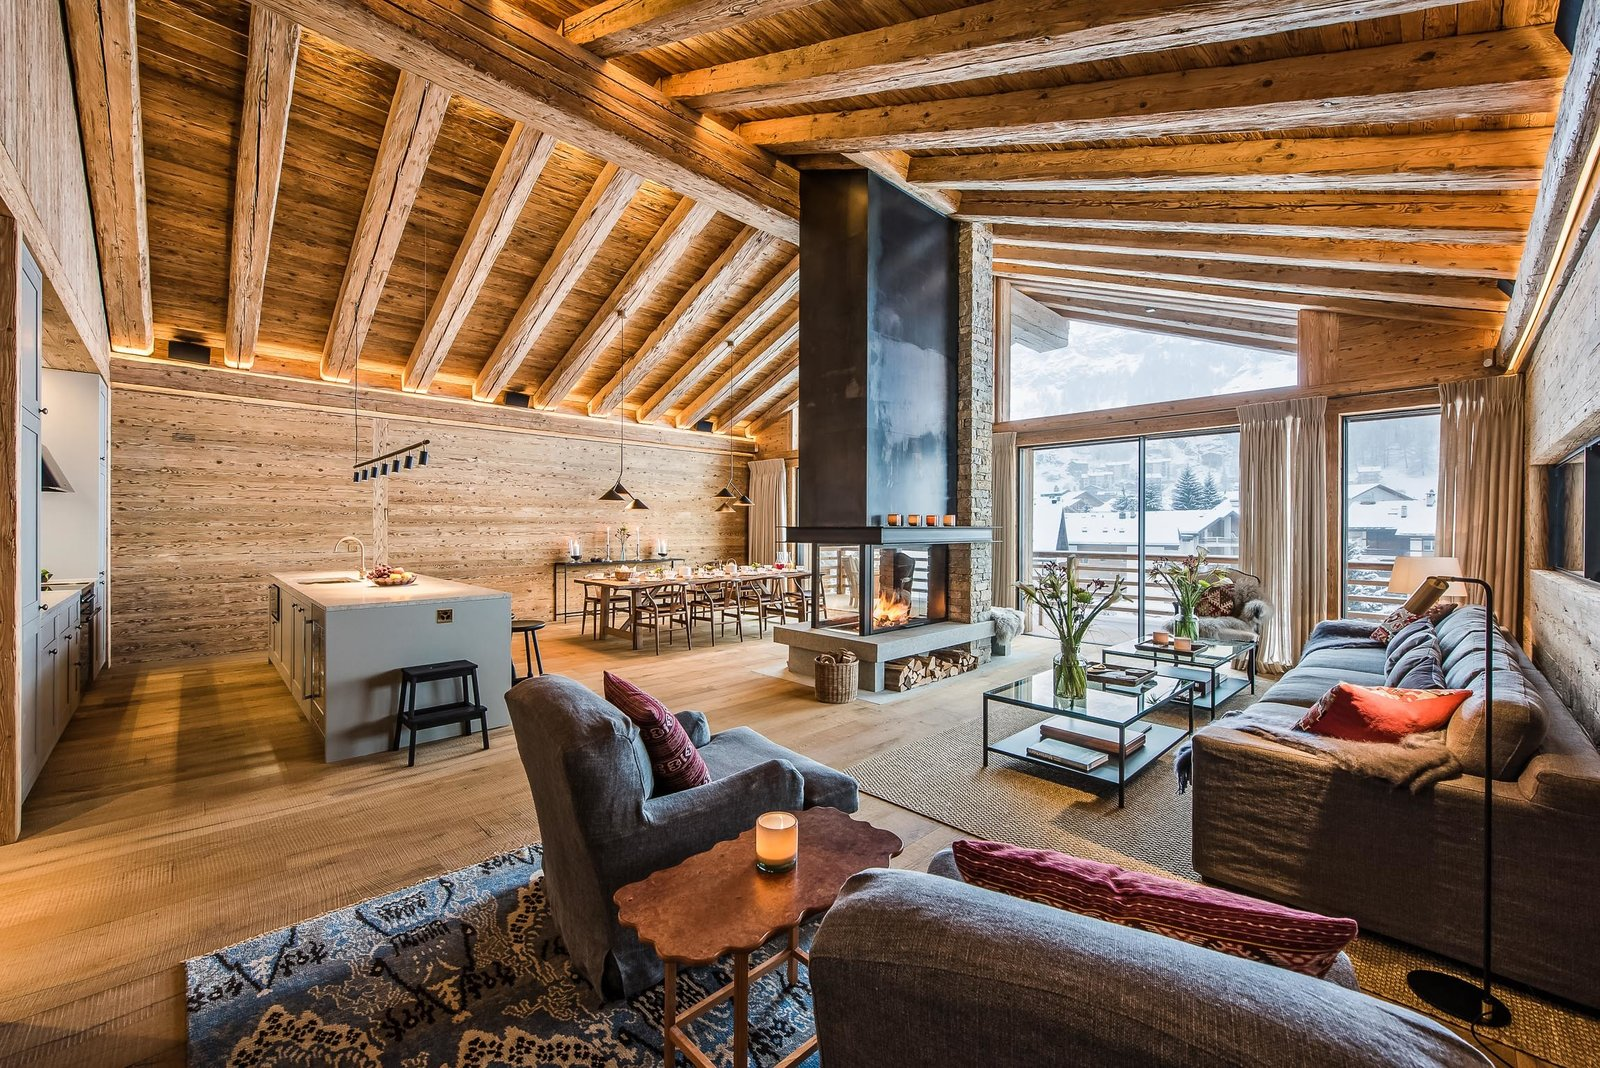 Photo 1 of 8 in 7 Alpine Holiday Chalets in Switzerland